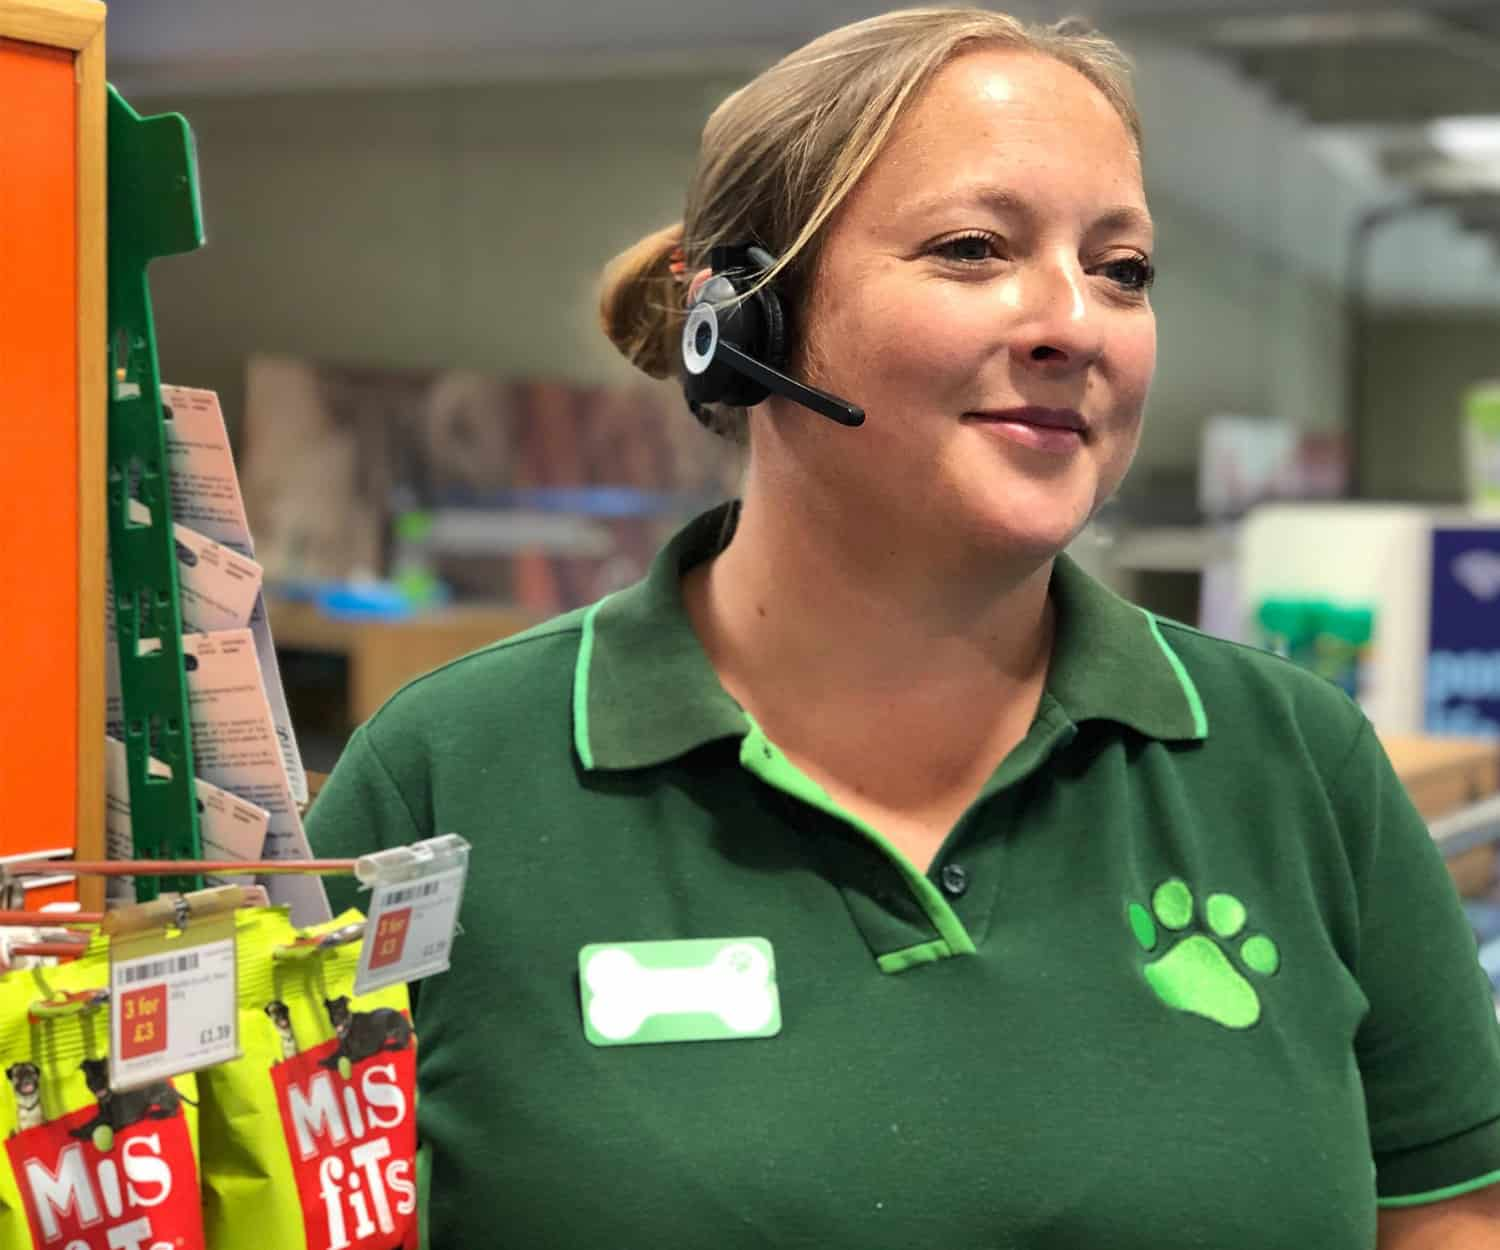 VoCoVo Pets at home - GO Wireless headsets